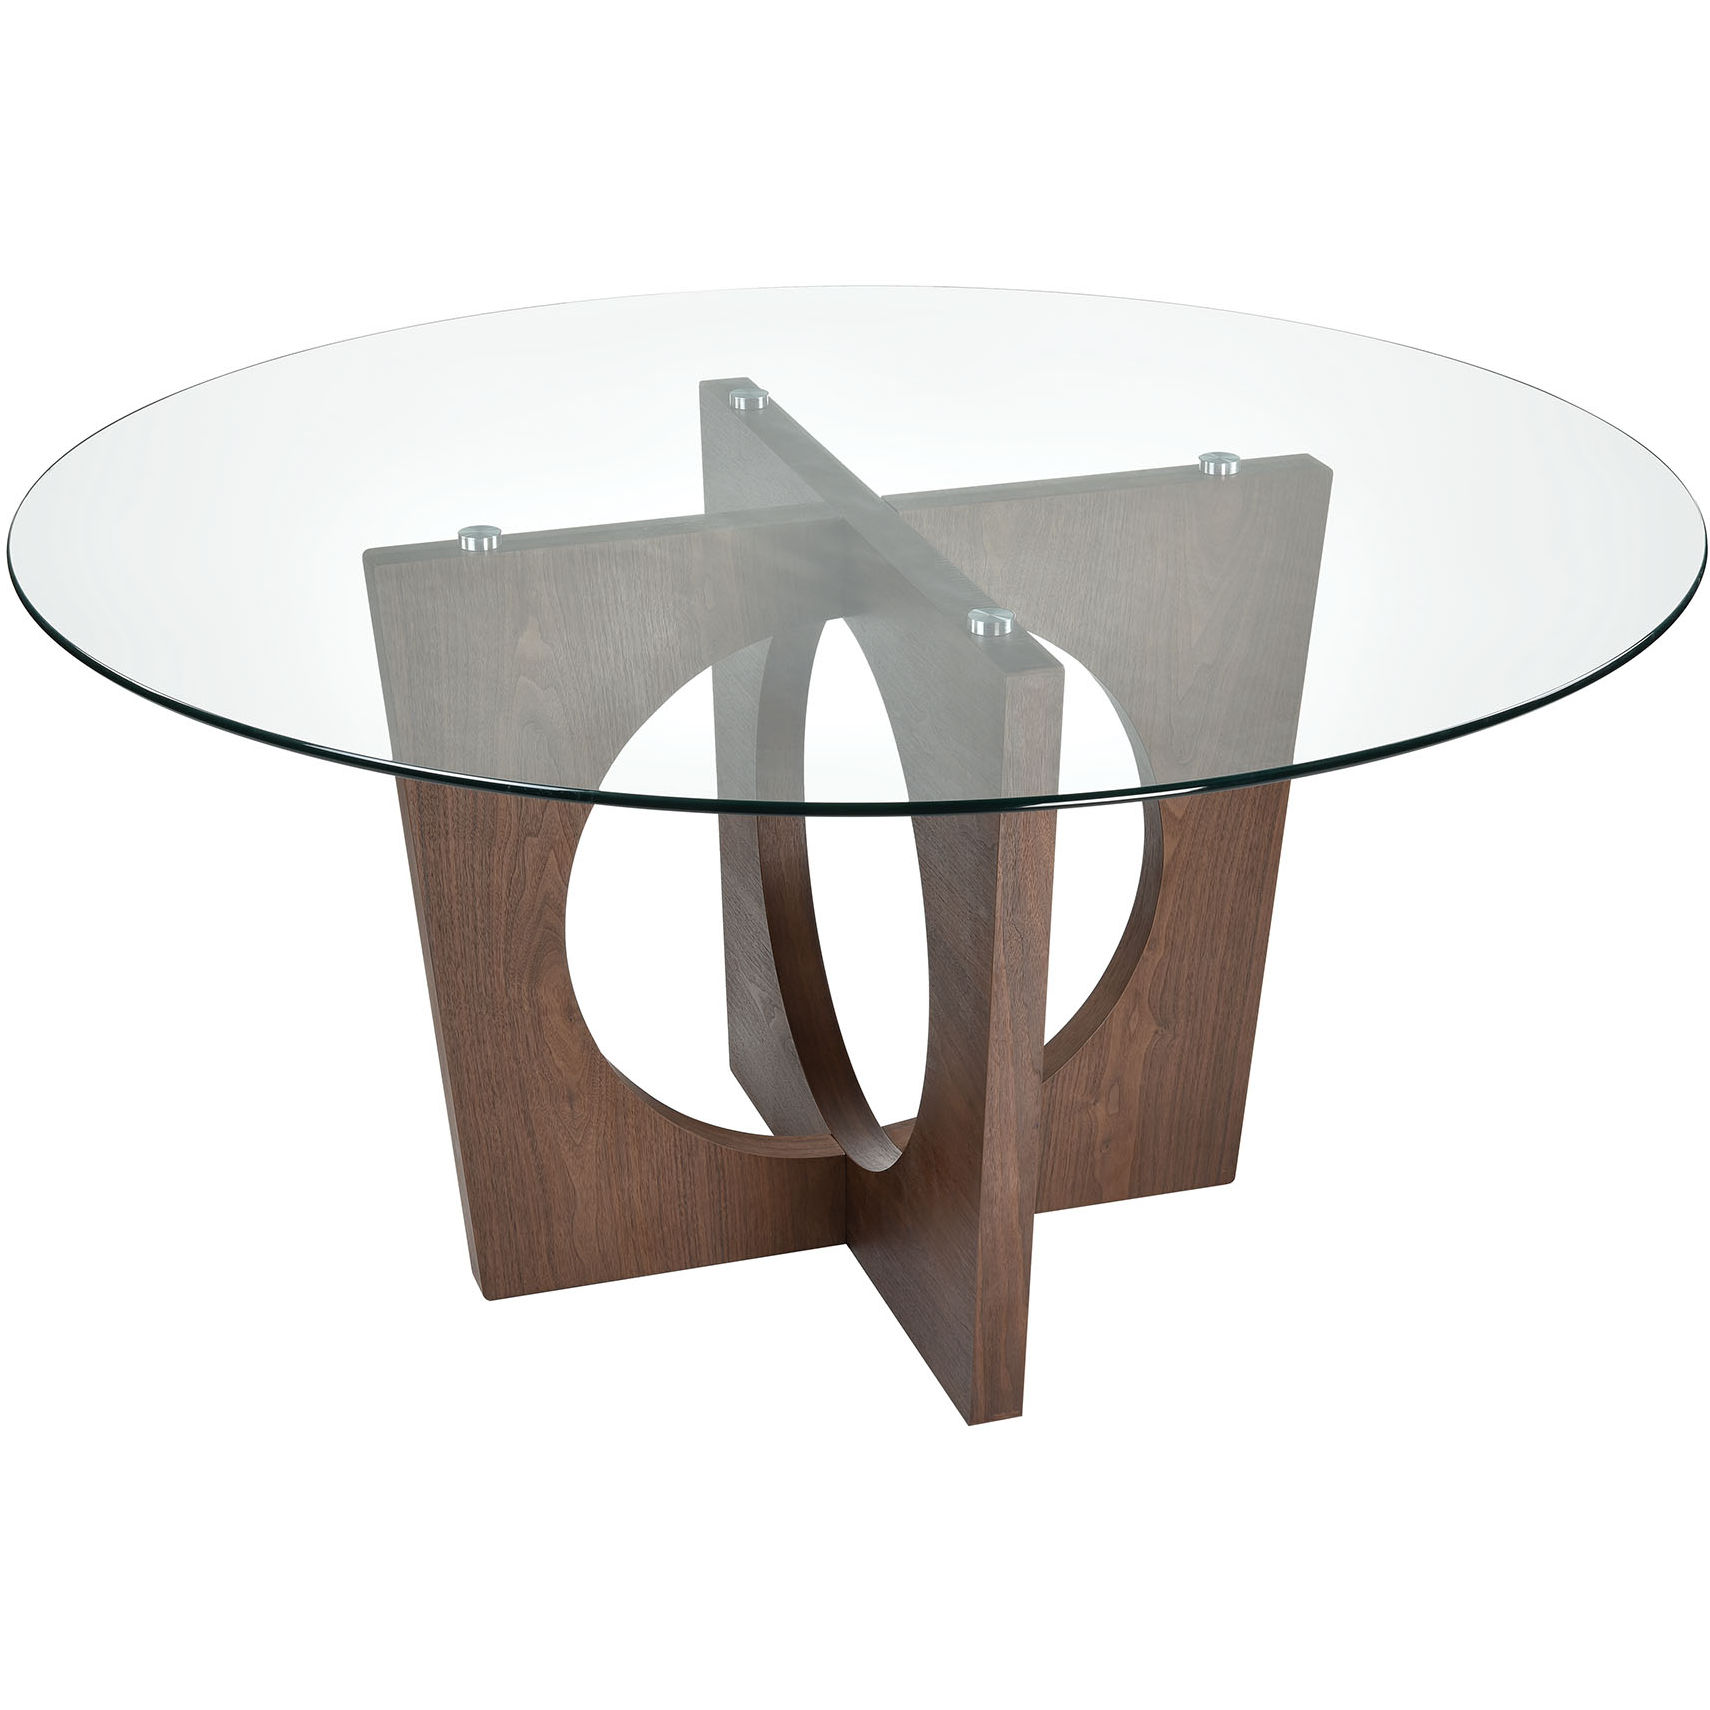 Fabulous Atria 60 Round Dining Table In Walnut Veneer Glass By Elk Home Gmtry Best Dining Table And Chair Ideas Images Gmtryco